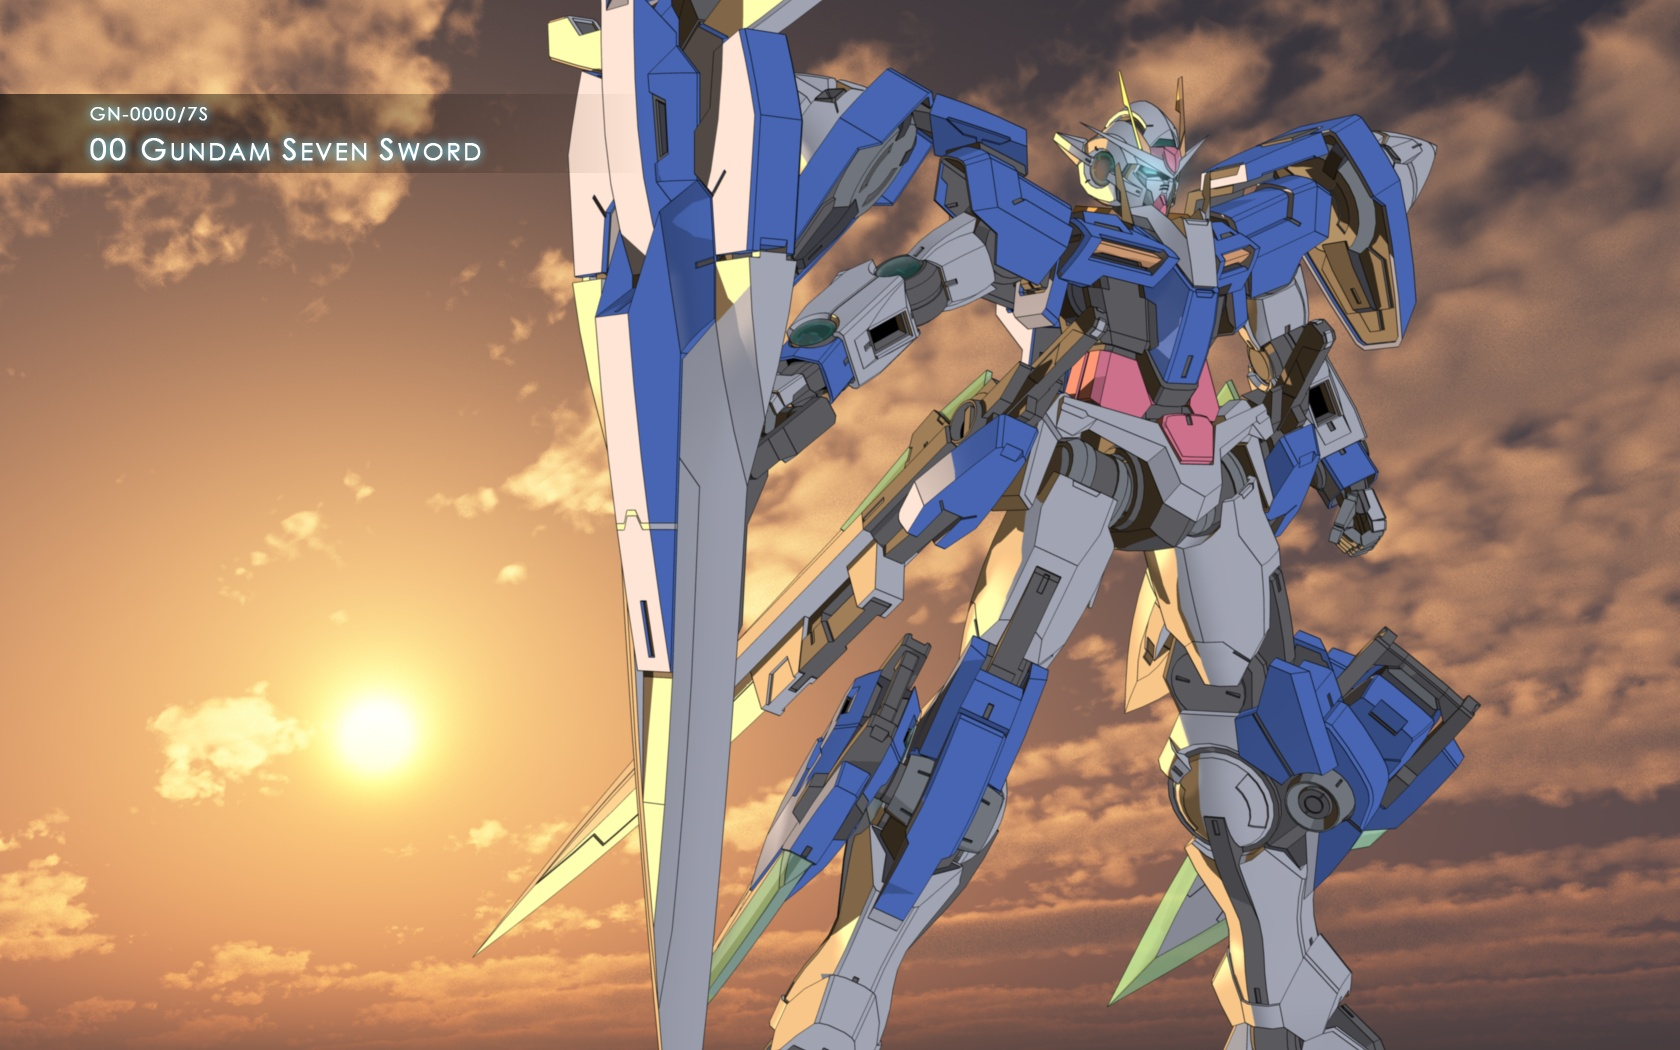 Mobile Suit Gundam 00 Wallpaper 185518 Zerochan Anime Image Board